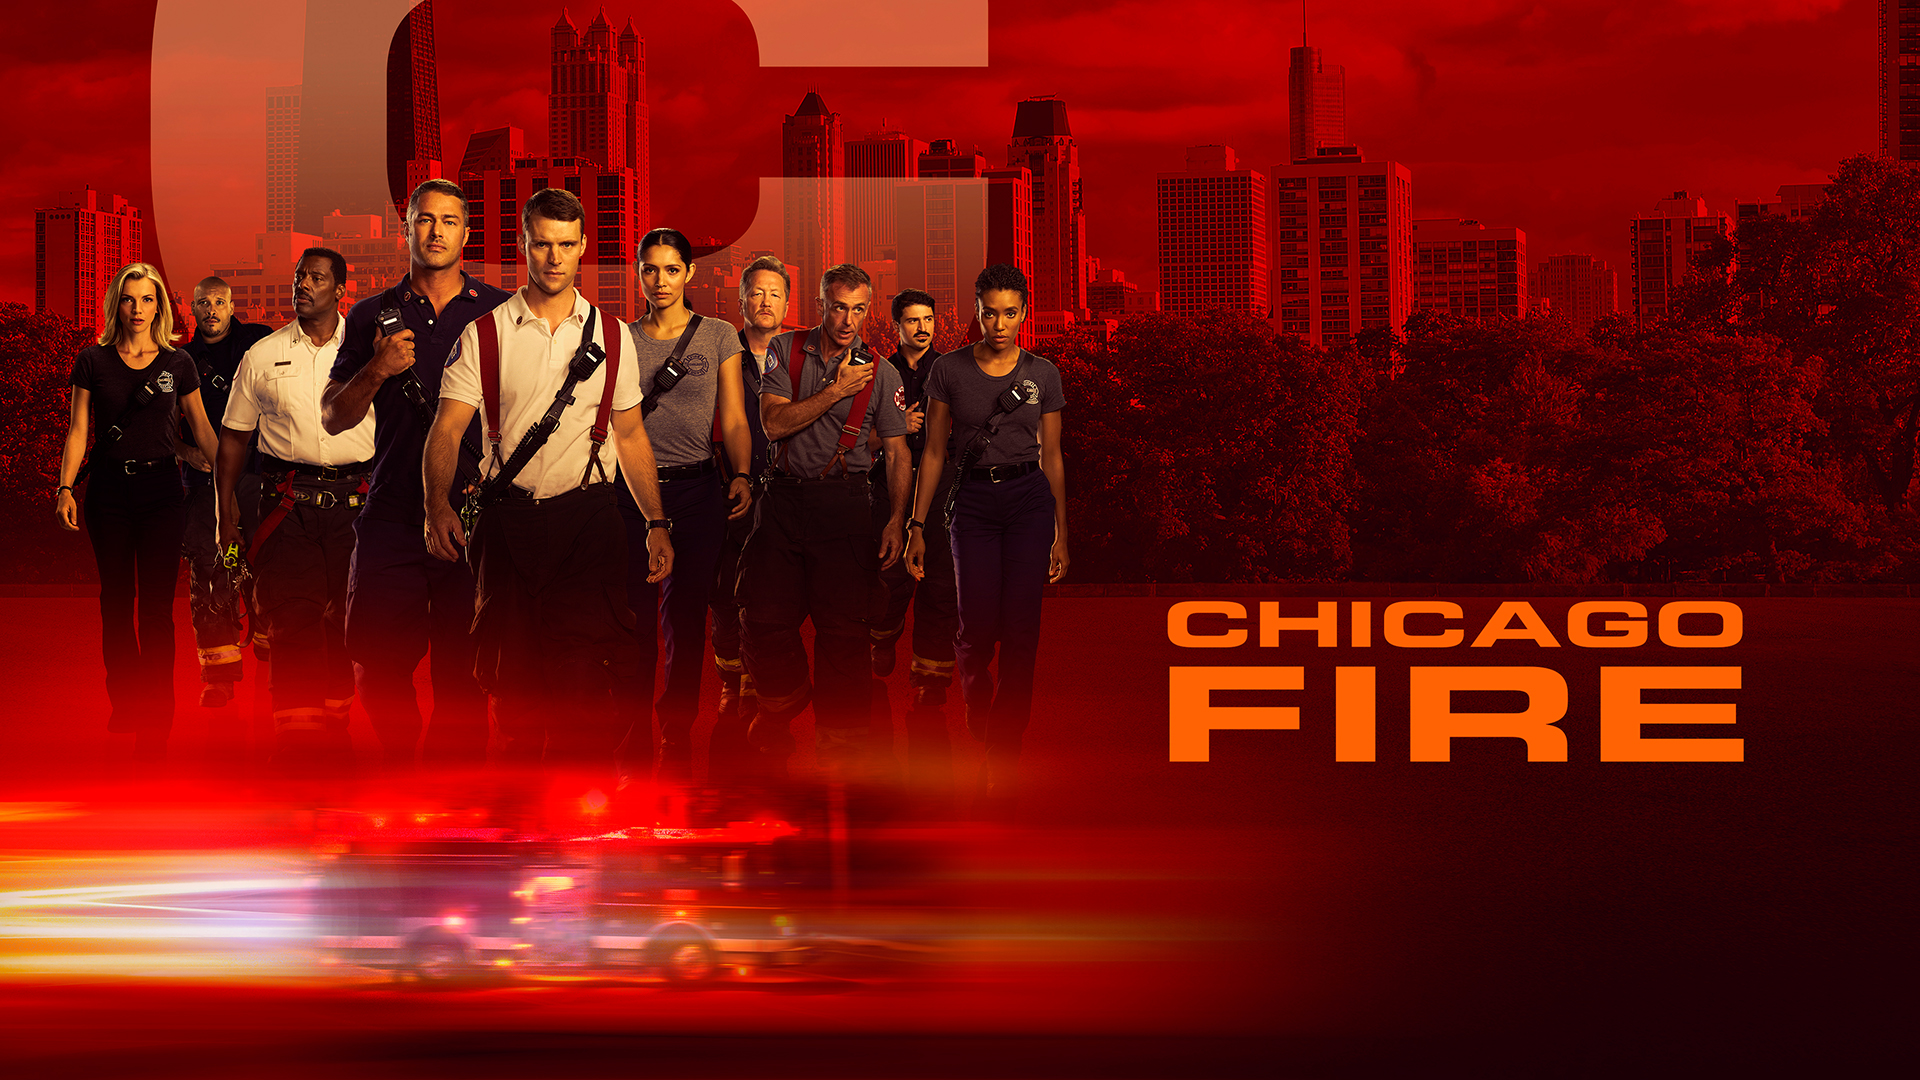 Chicago Fire Season 7 Episodes - NBC com